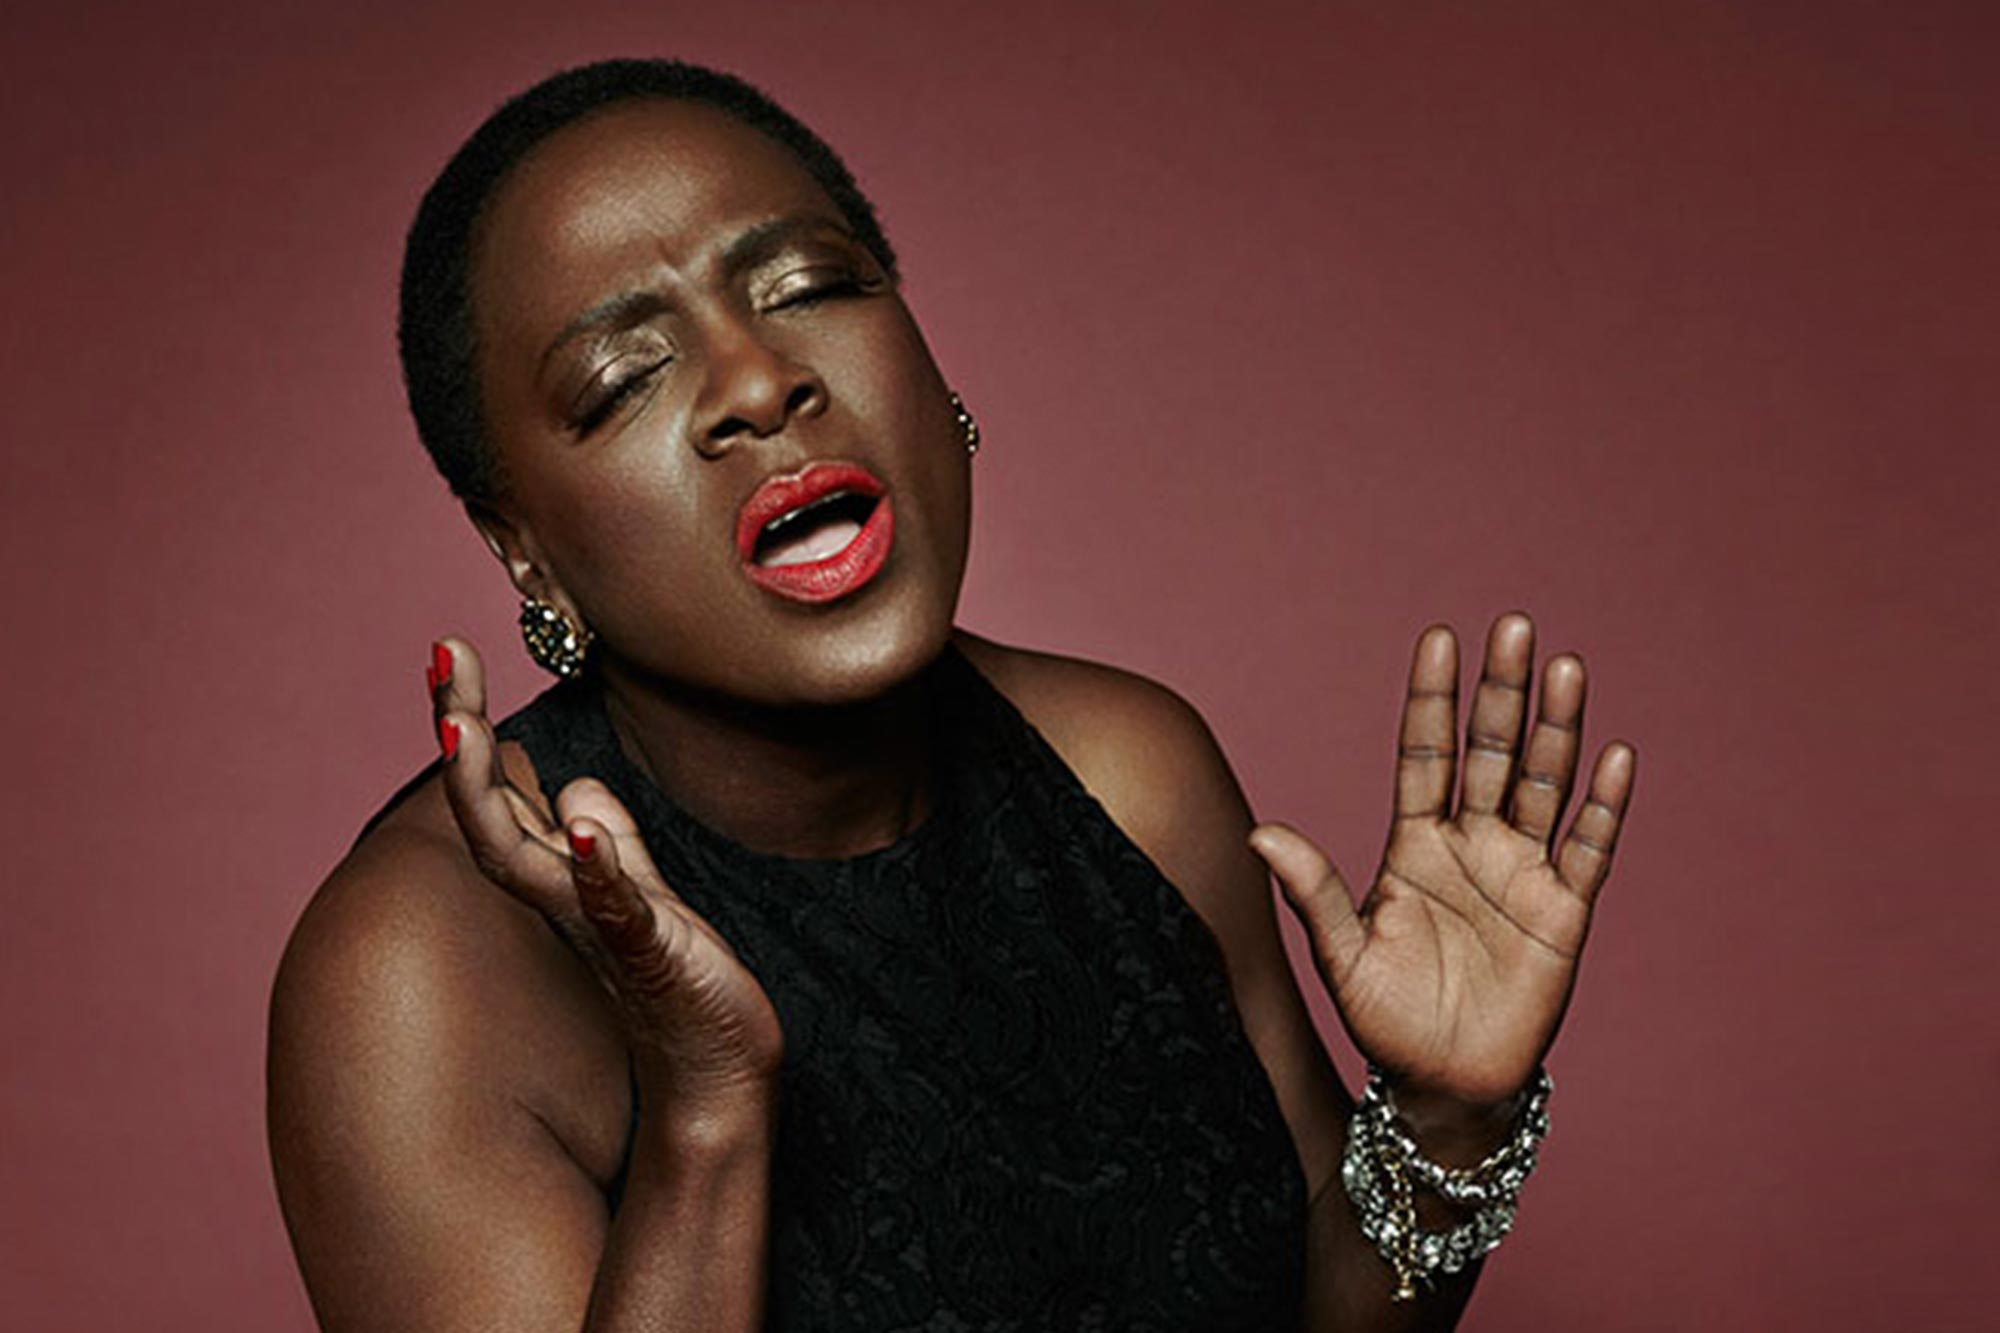 Cole Haan — Sharon Jones & The Dap Kings